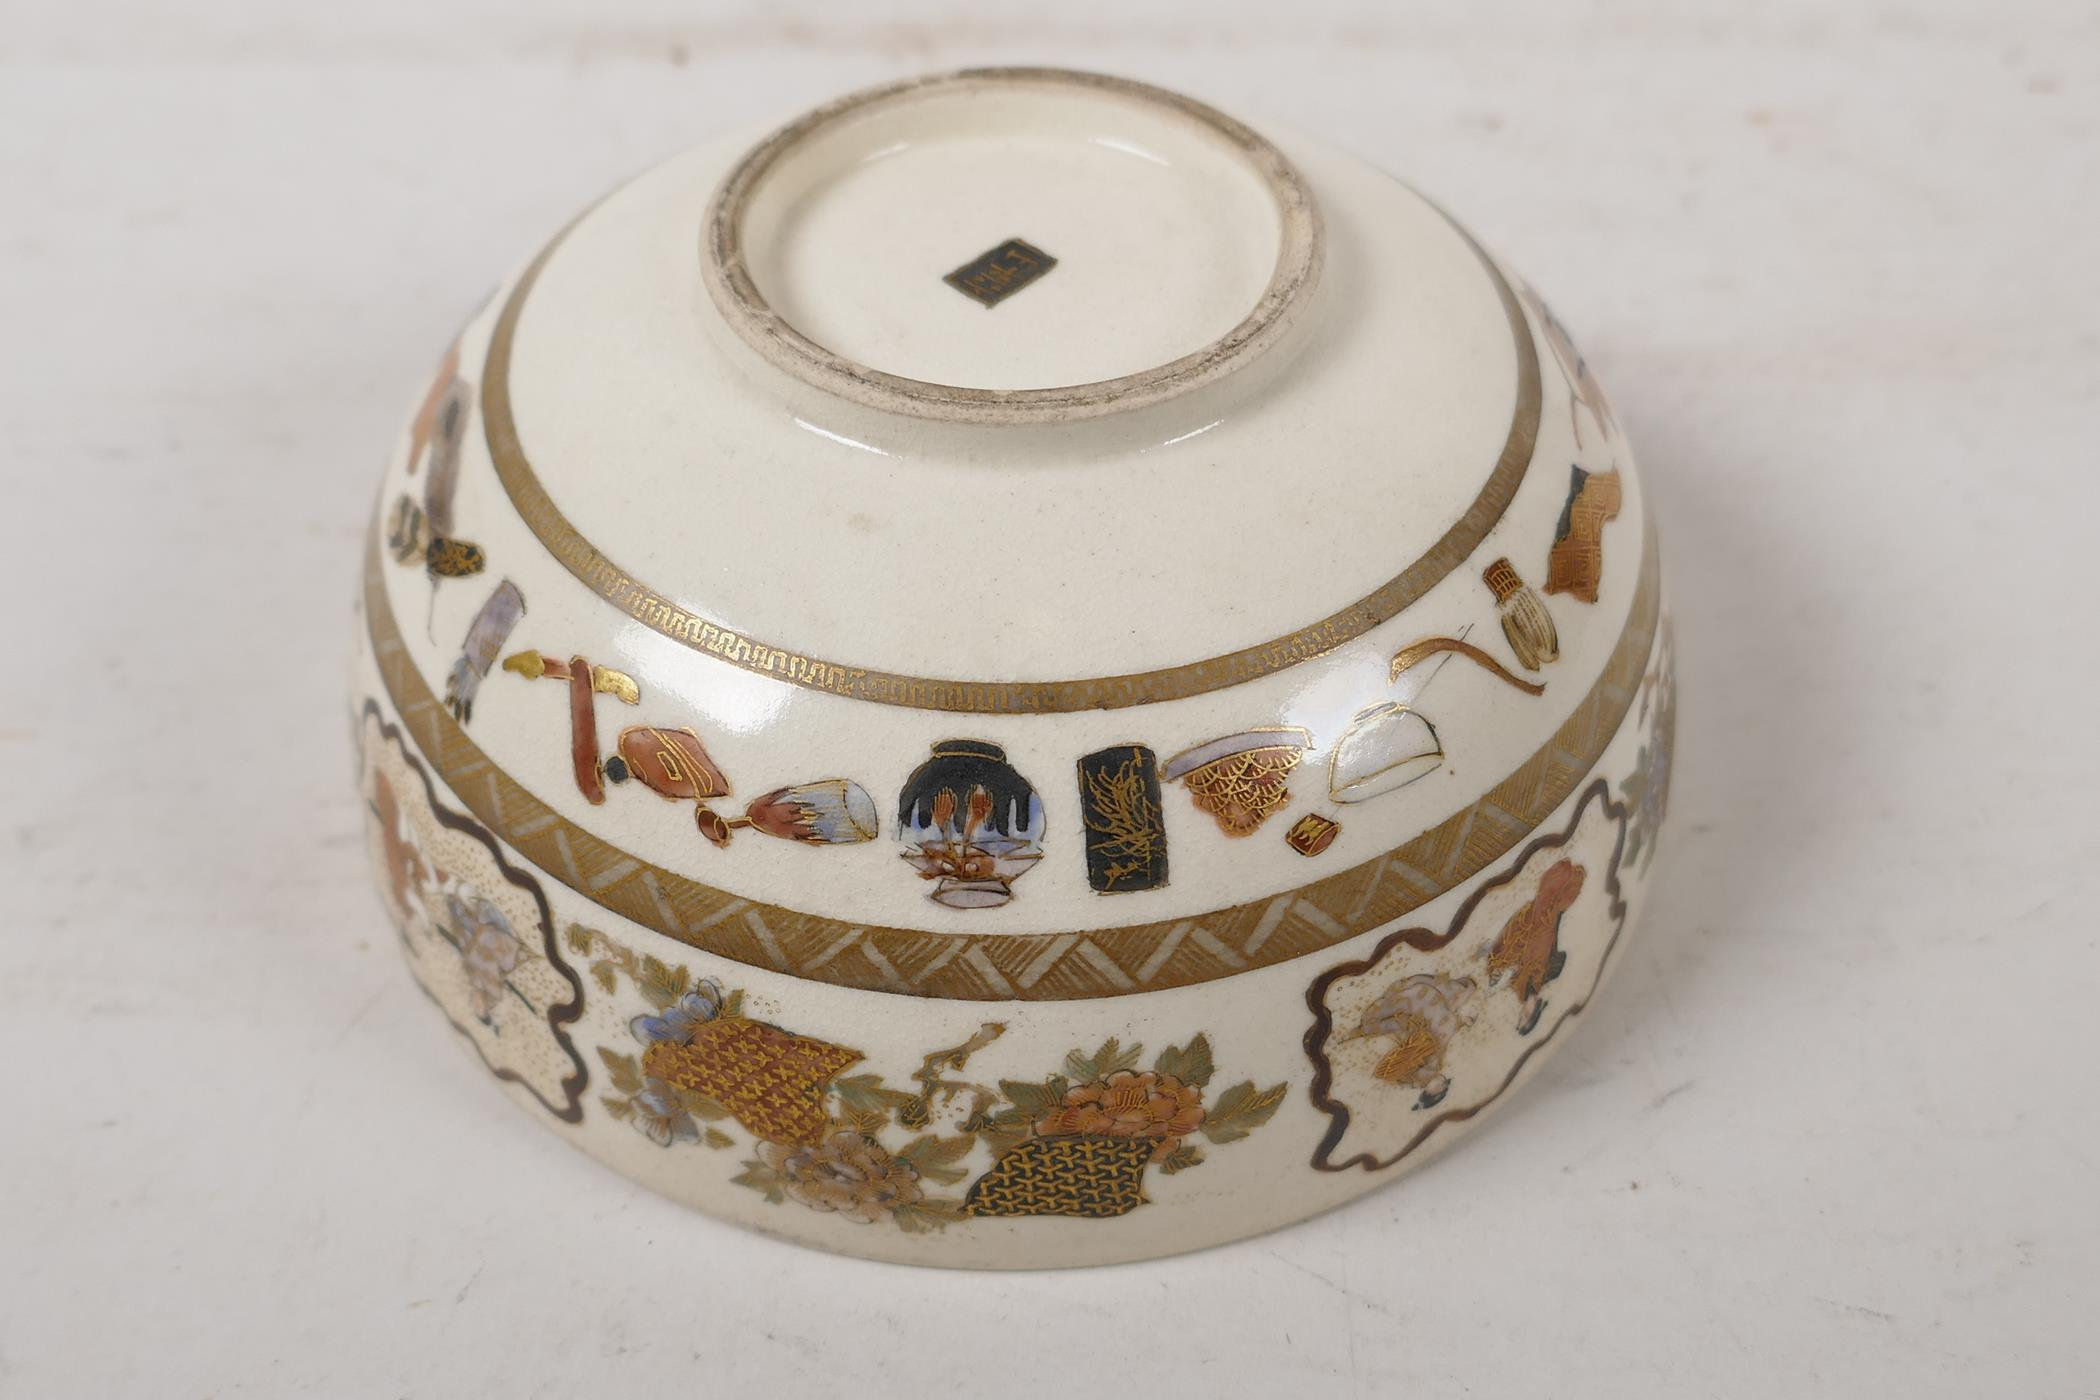 A Japanese meiji period satsuma bowl, decorated with children to the interior, the exterior with - Image 6 of 8